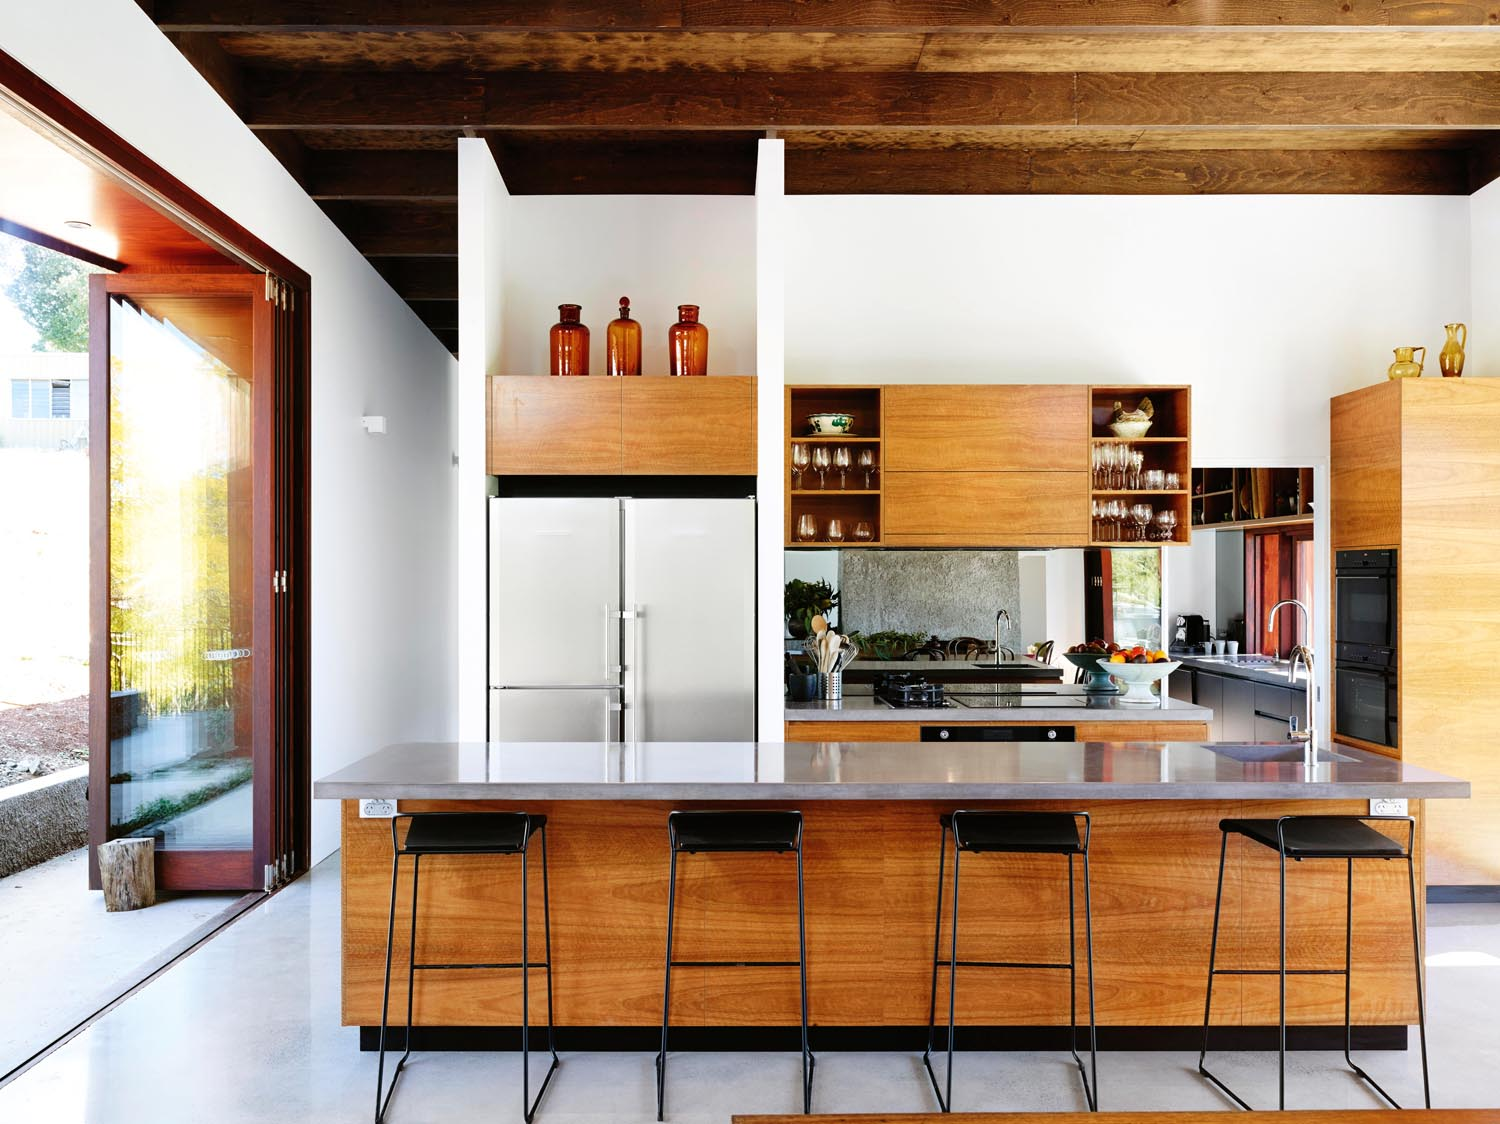 Grand designs australia futuristic farmhouse completehome for Minimalist house grand designs